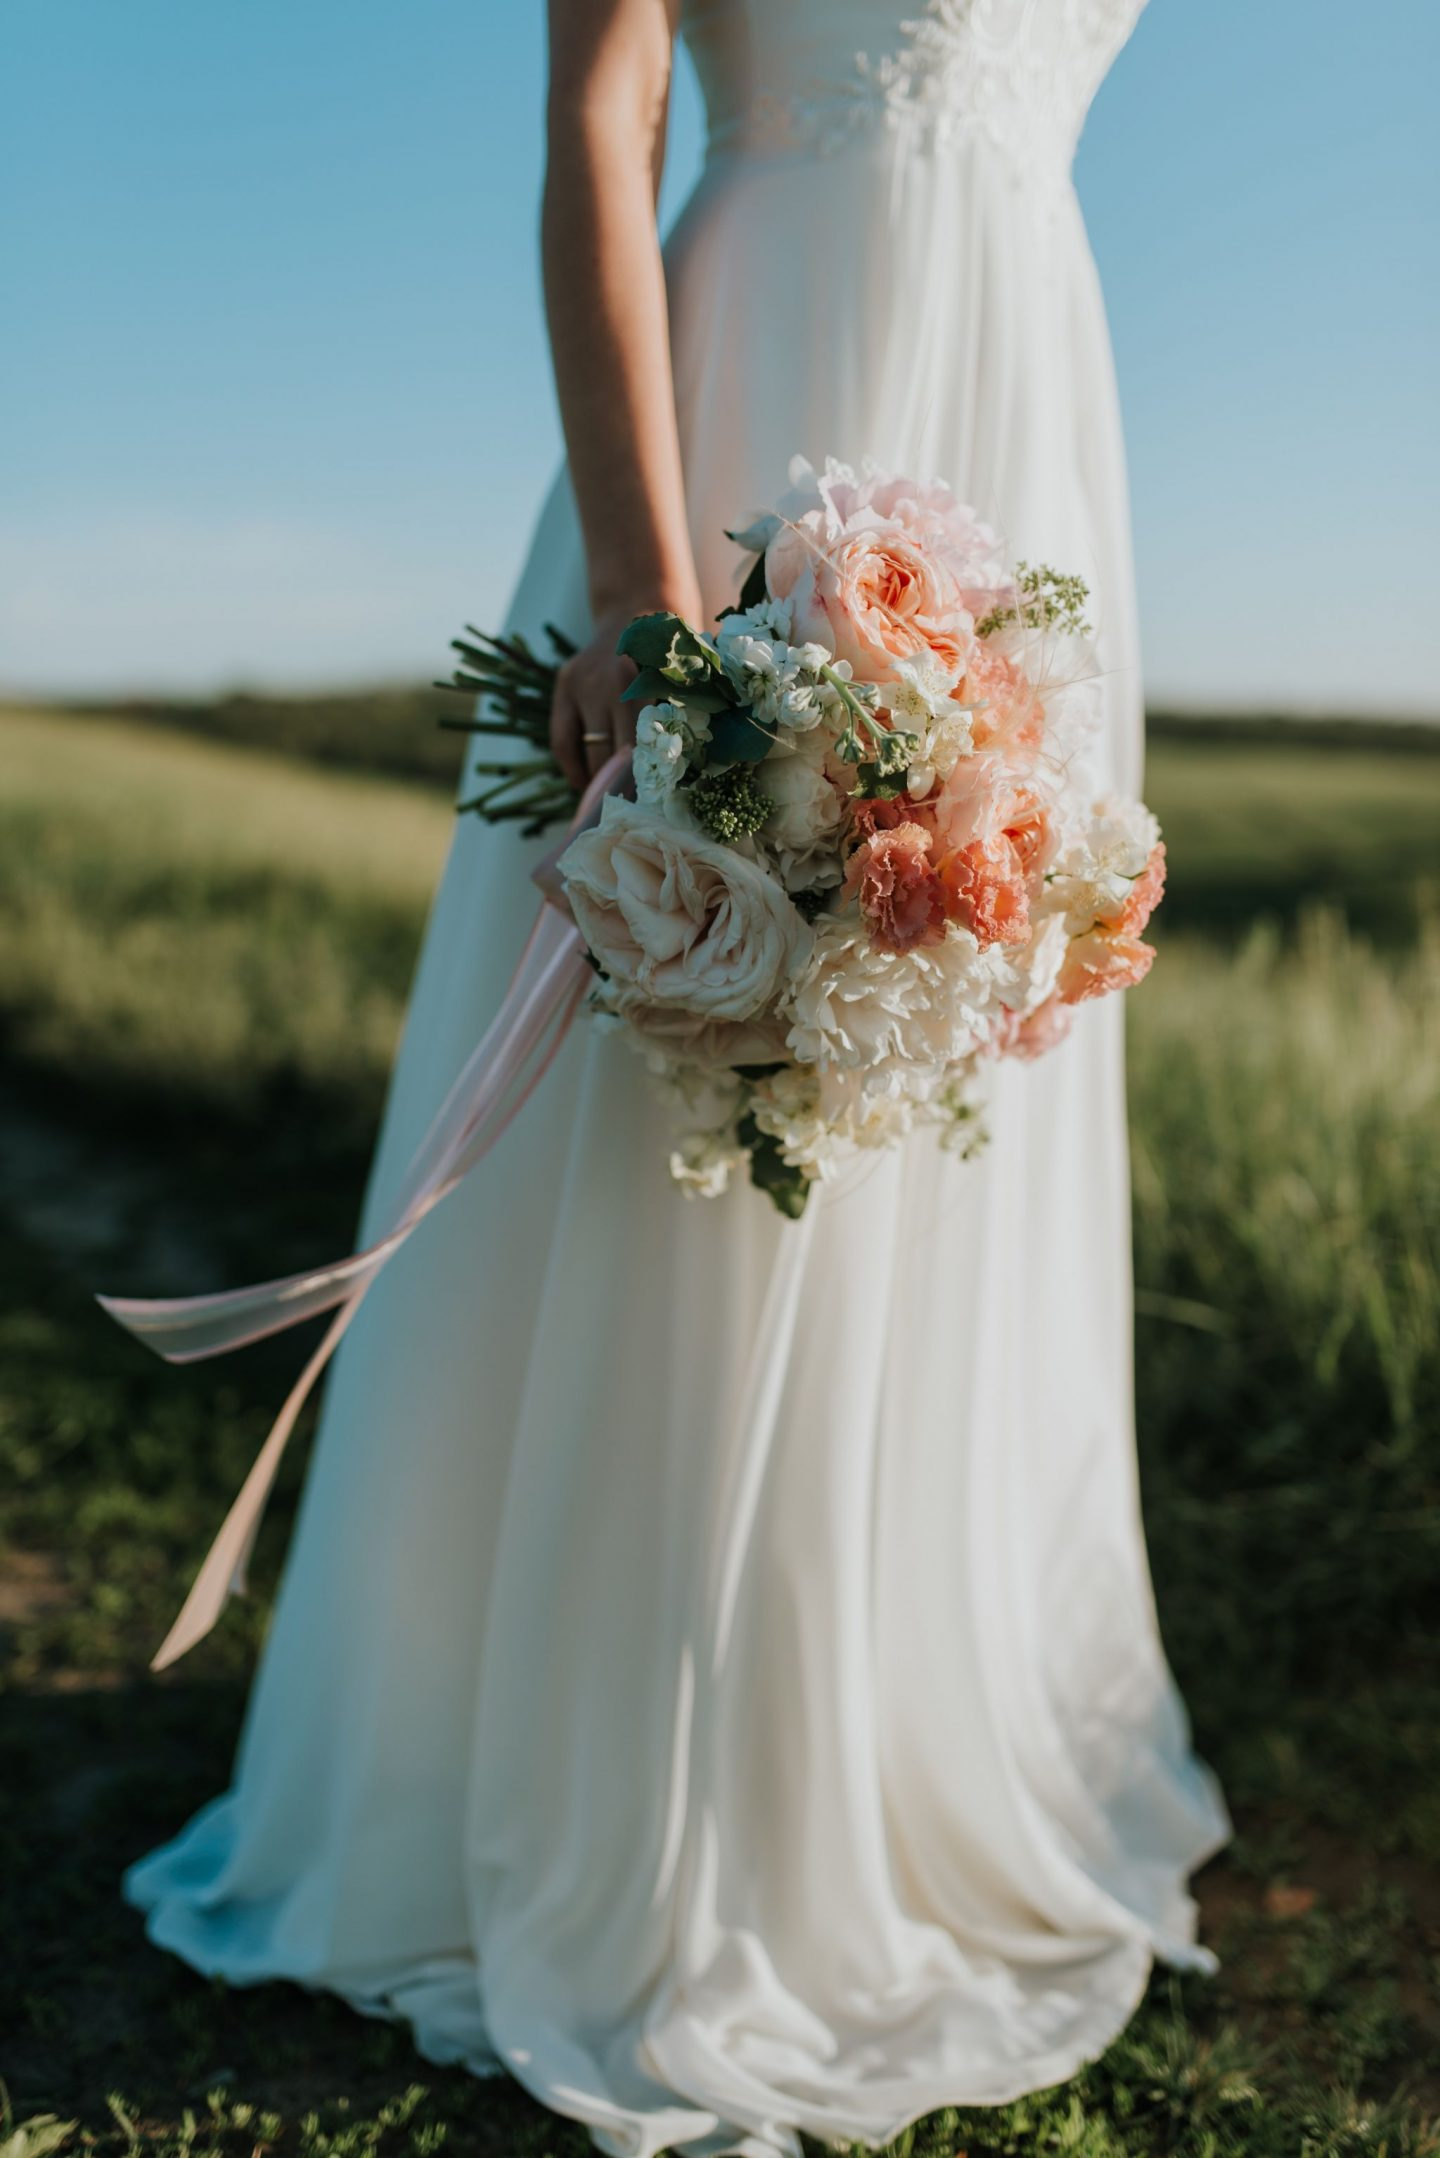 HOW CAN YOU LOOK YOUR BEST ON YOUR WEDDING DAY?